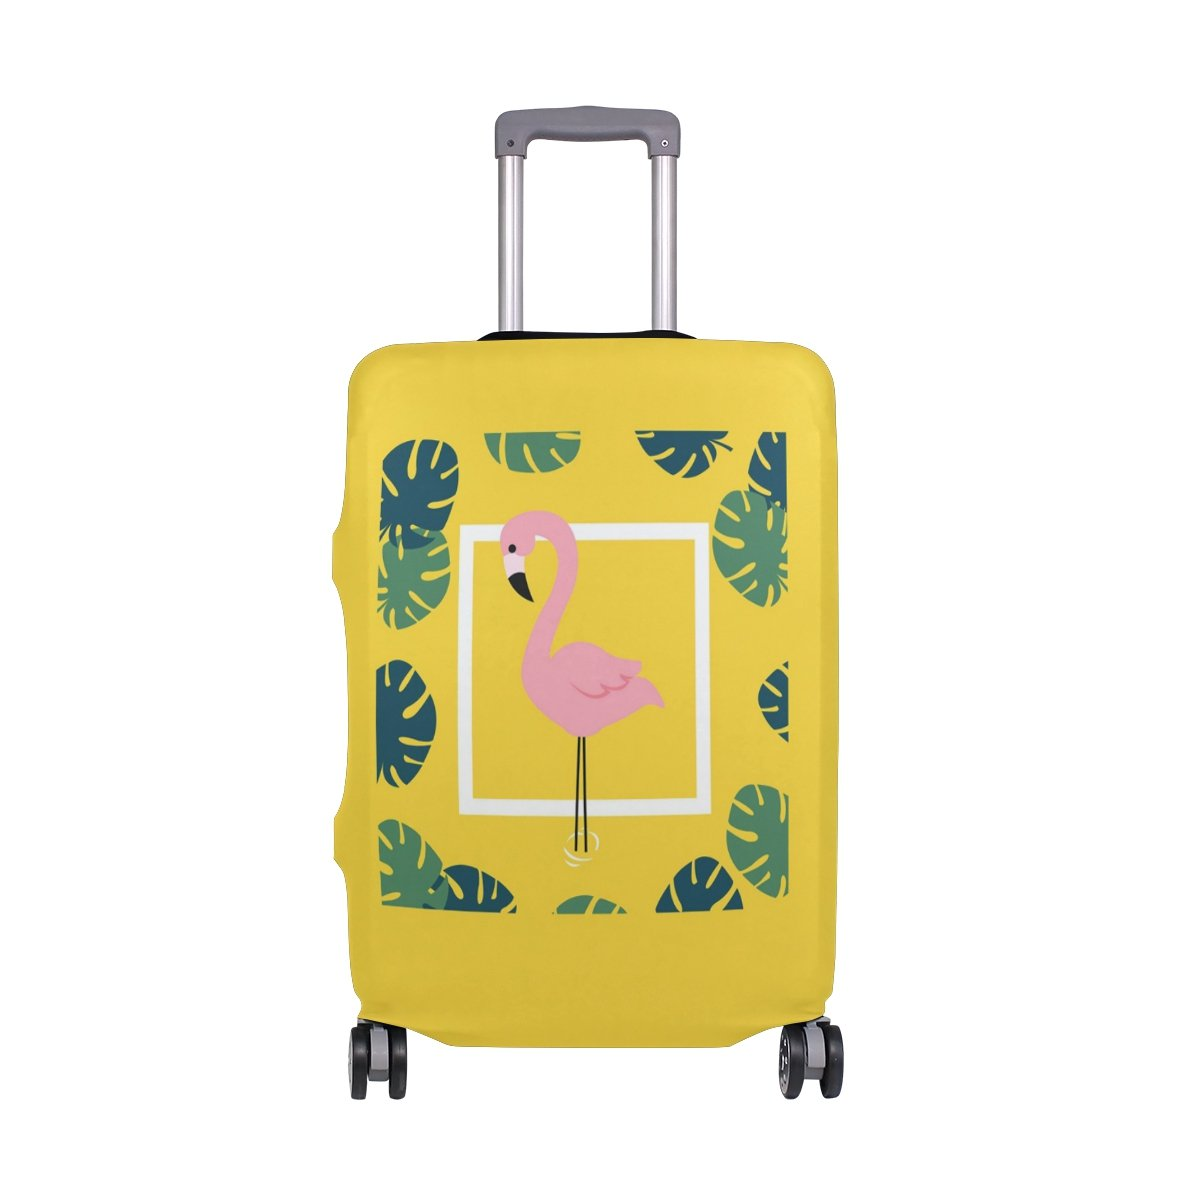 ZZKKO Summer Tropical Leaves Flamingo Travel Luggage Cover Suitcase Protector Bag - Fits 22-24 Inches Luggage